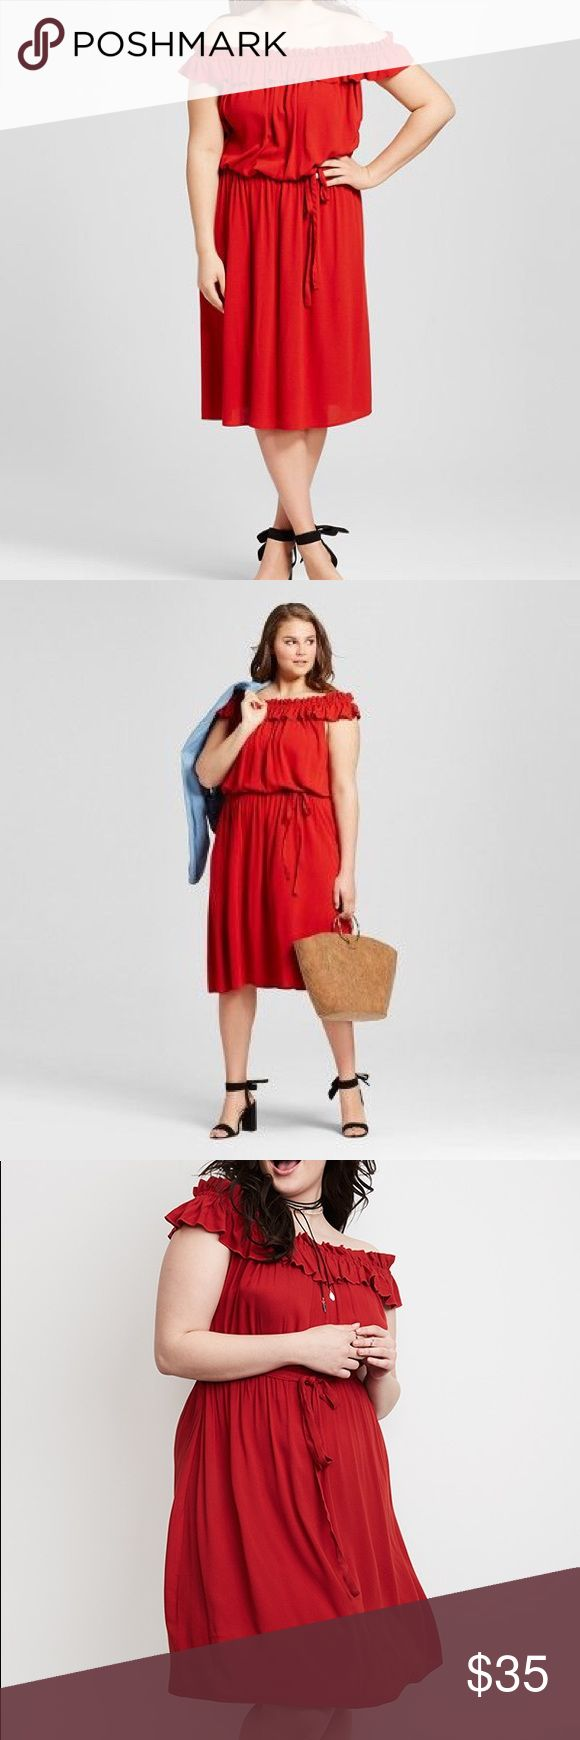 "Red Bardot dress in plus Bardot off the shoulder dress. Orange red dress with ruffle top. Elastic waist for comfort and best fit. Midi length perfect to wear with most any shoes. New without tags. 62"" bust about 47"" length. whowhatwear Dresses"